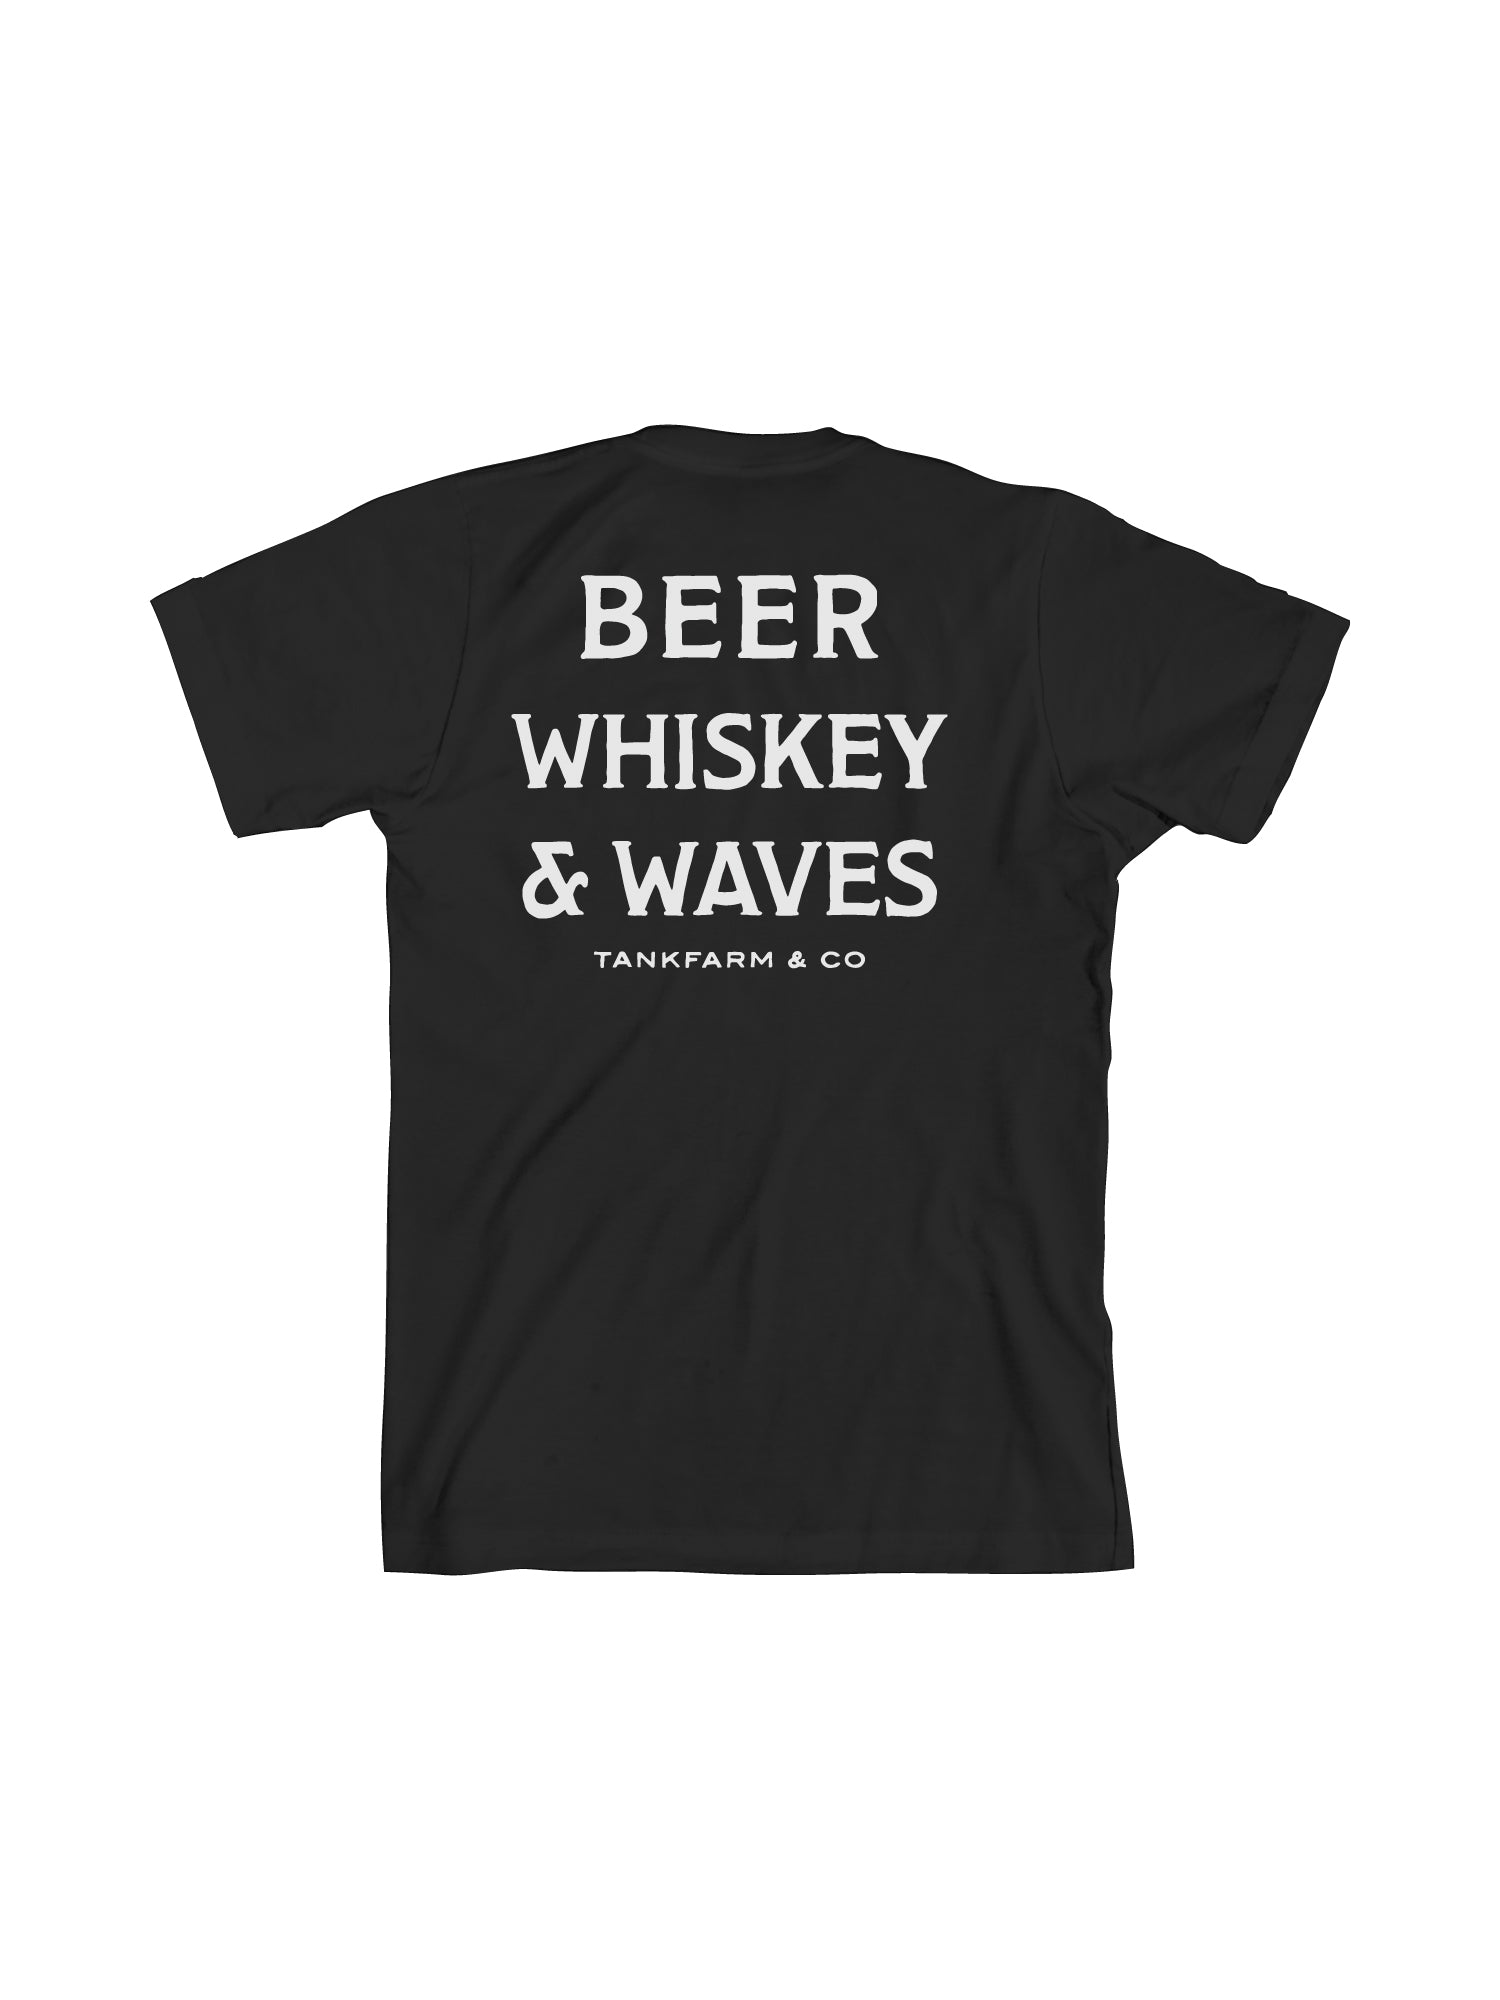 BEER, WHISKEY, AND WAVES - BLACK - Tankfarm & Co.